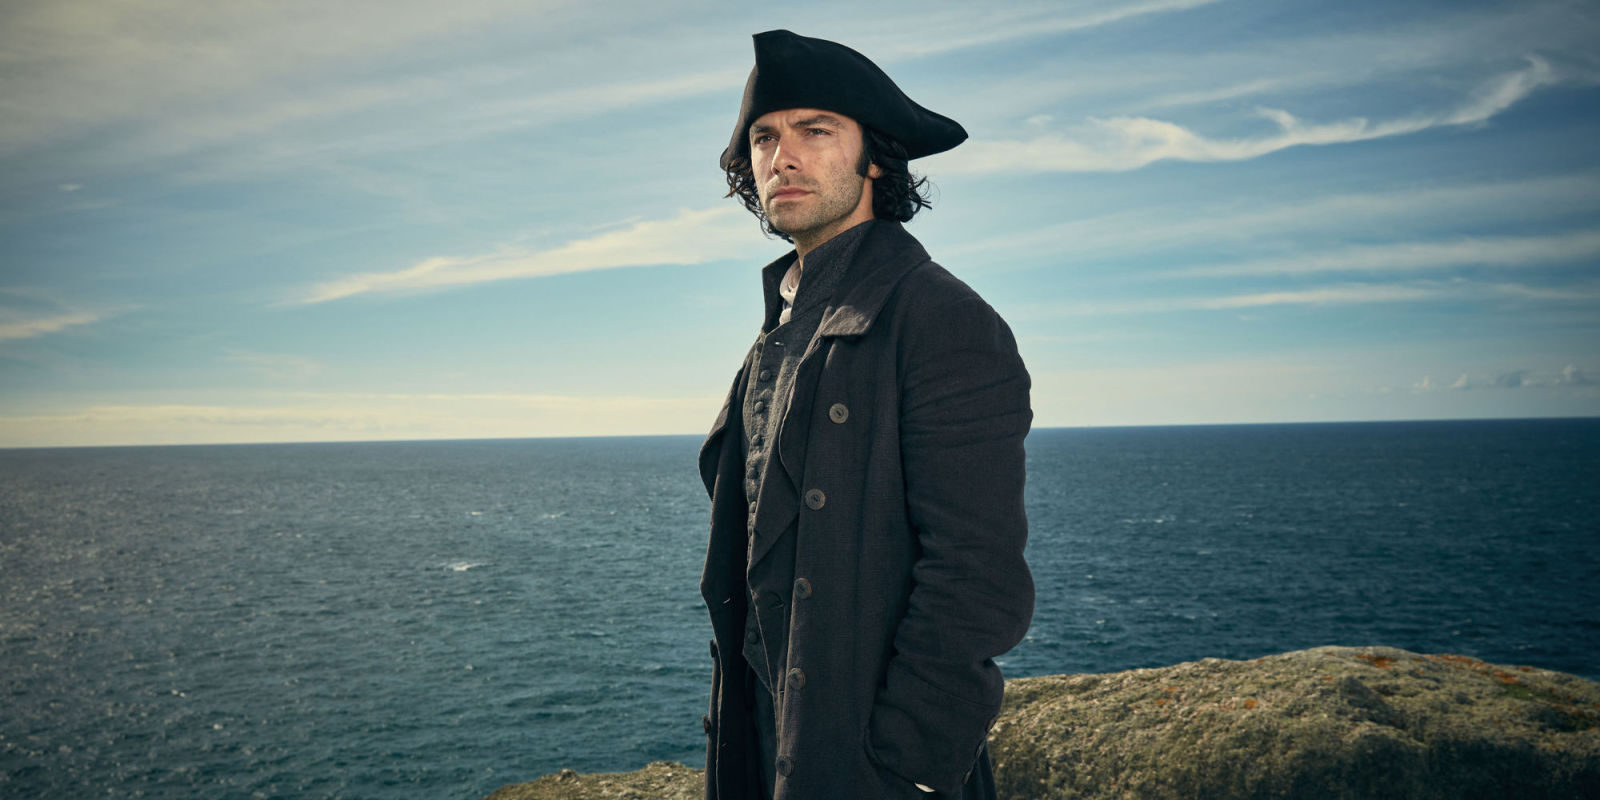 What's going to happen in Poldark S4? Aidan Turner